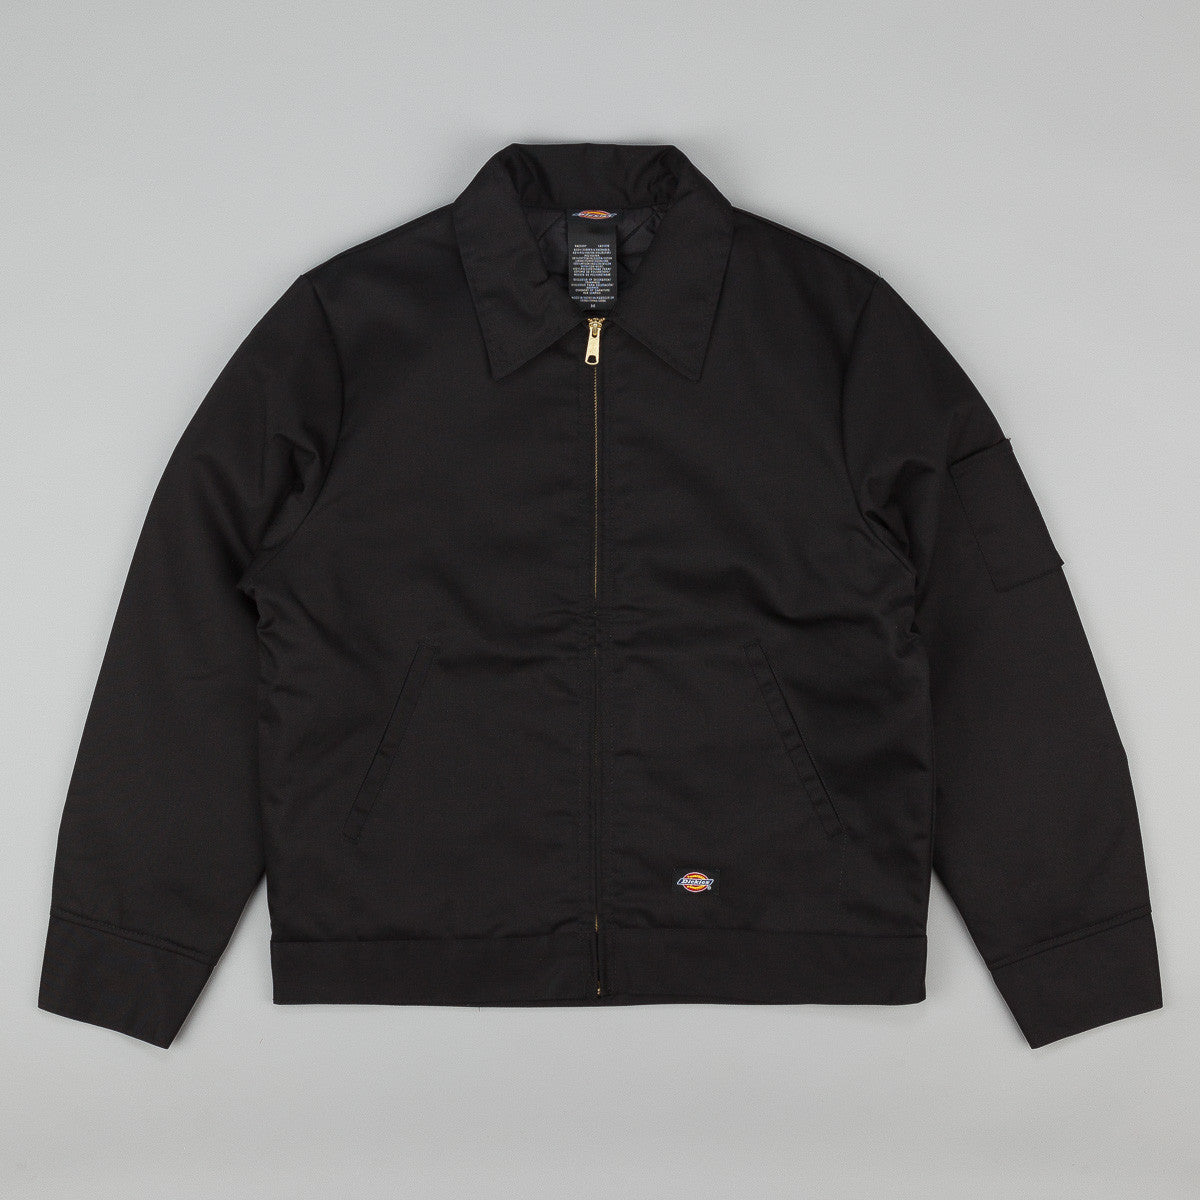 Dickies X Yardsale Lined Eisenhower Jacket